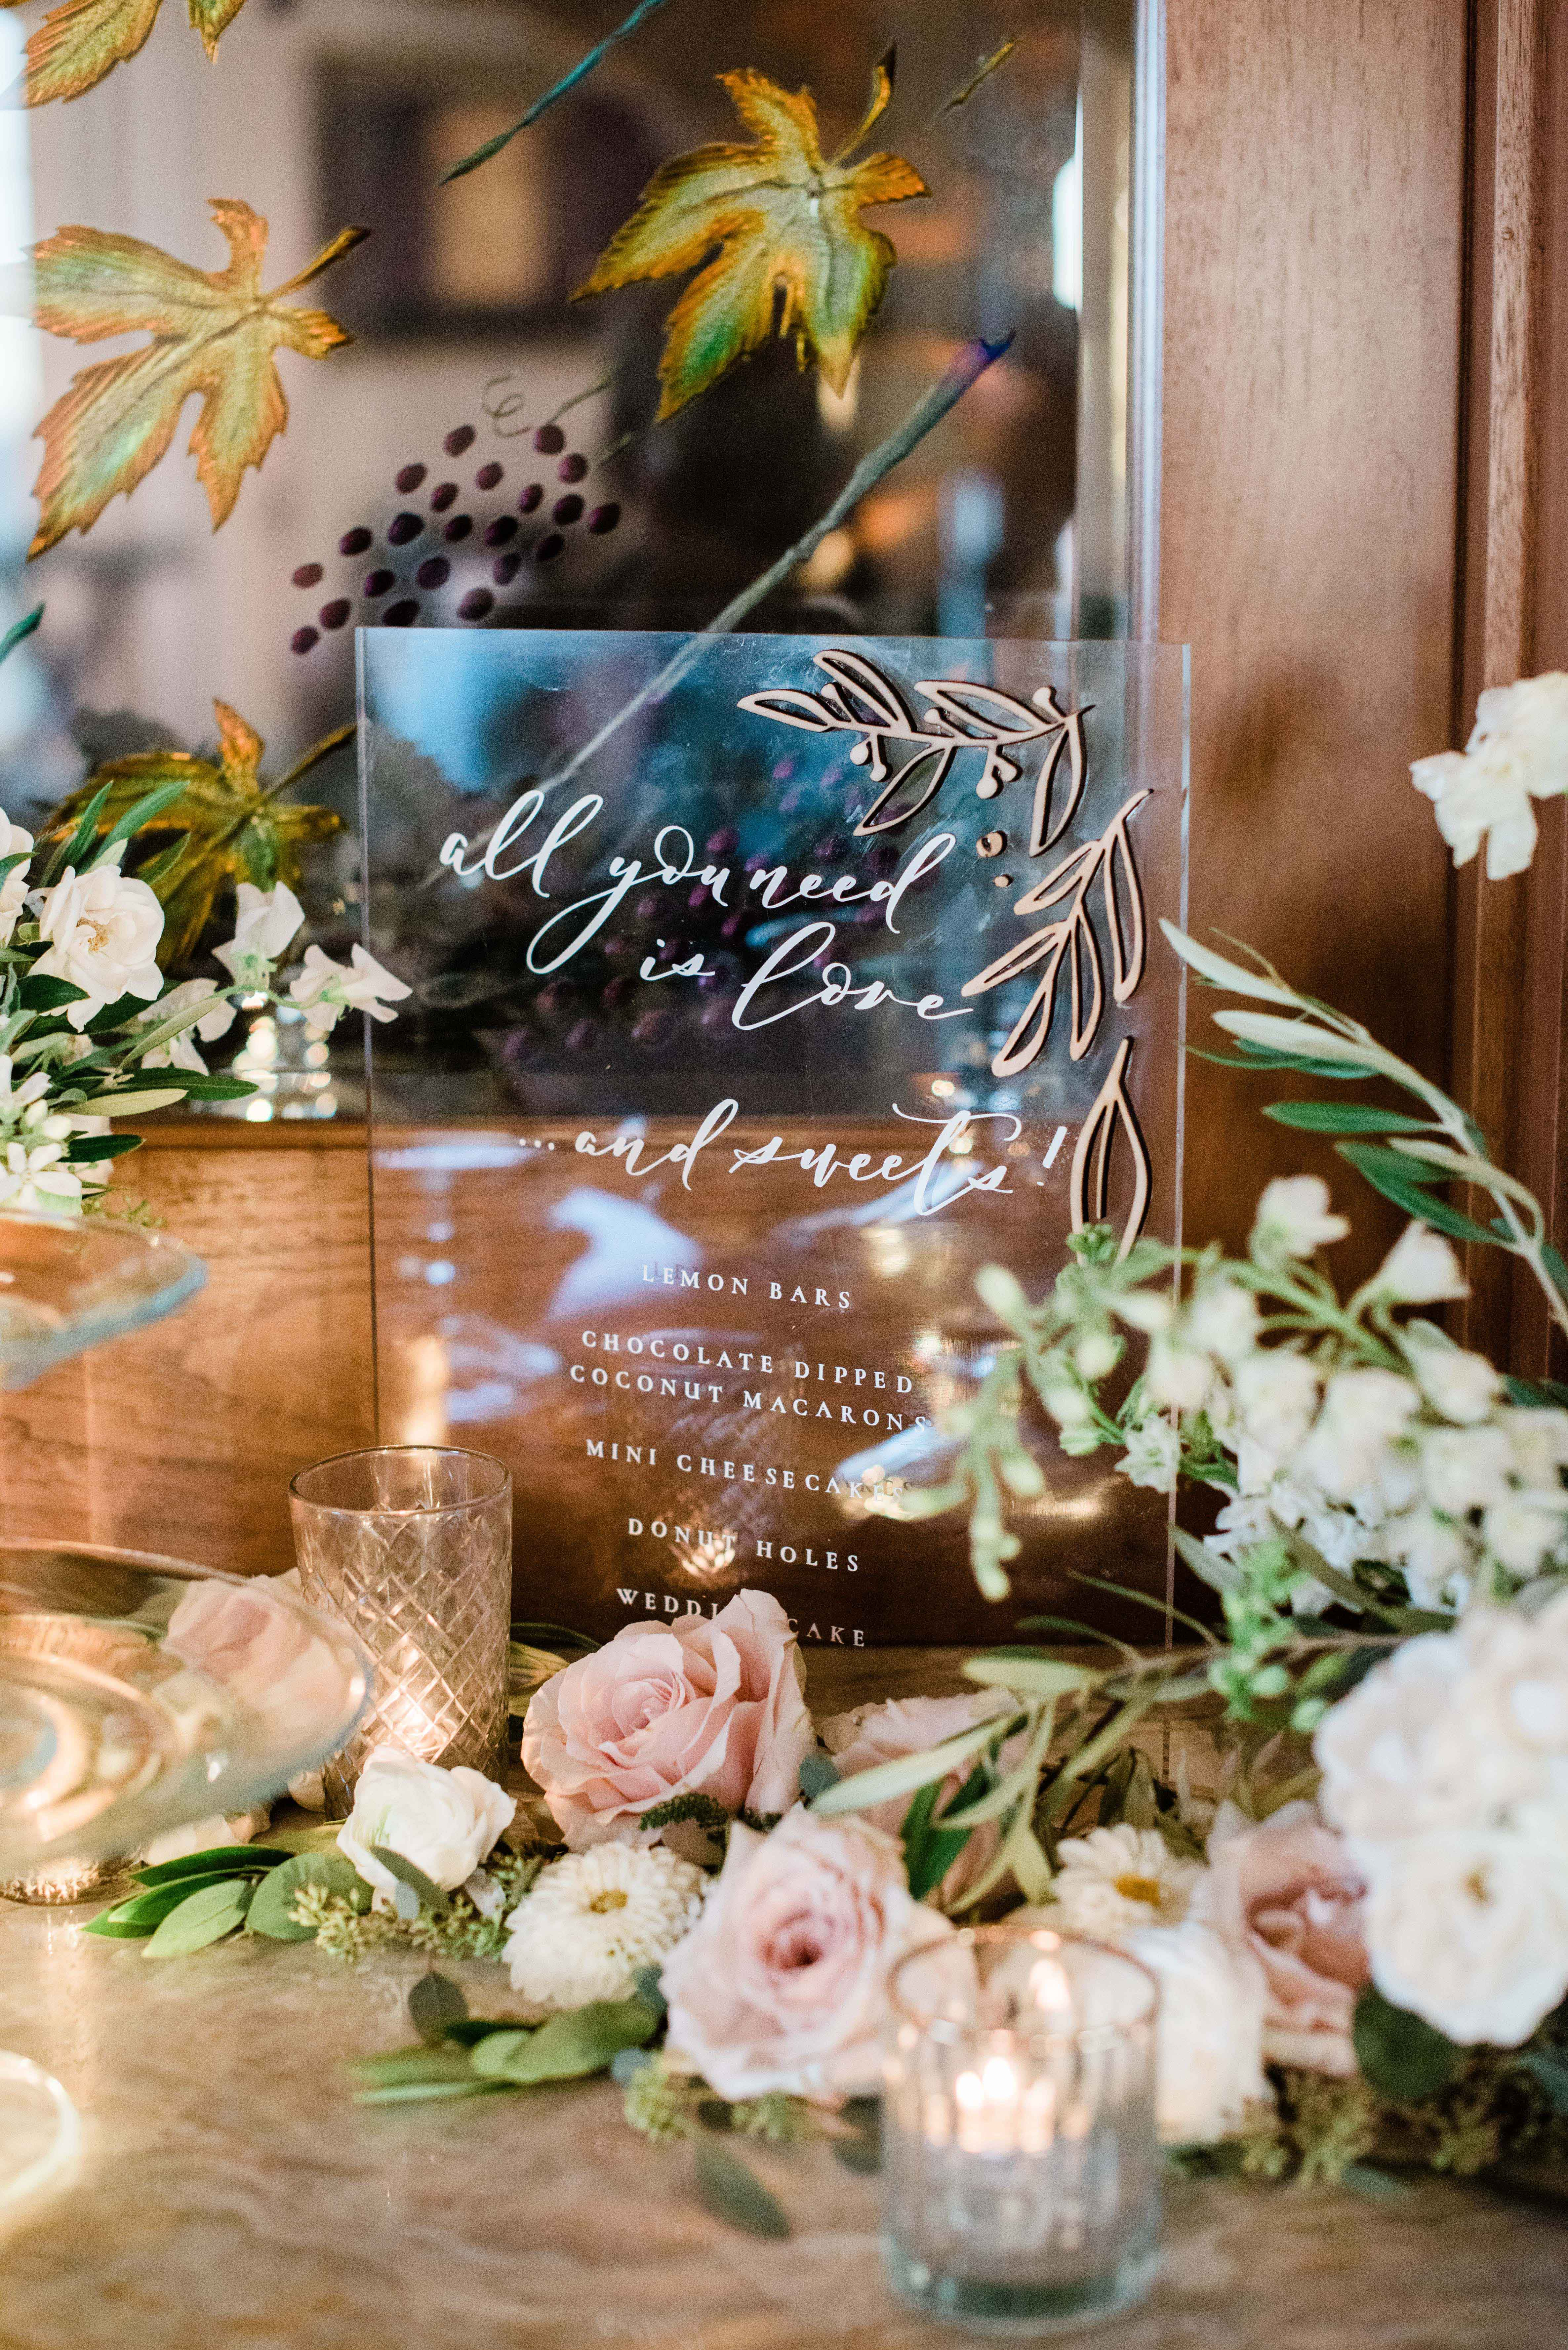 dessert menu ideas Lucite see-through sign